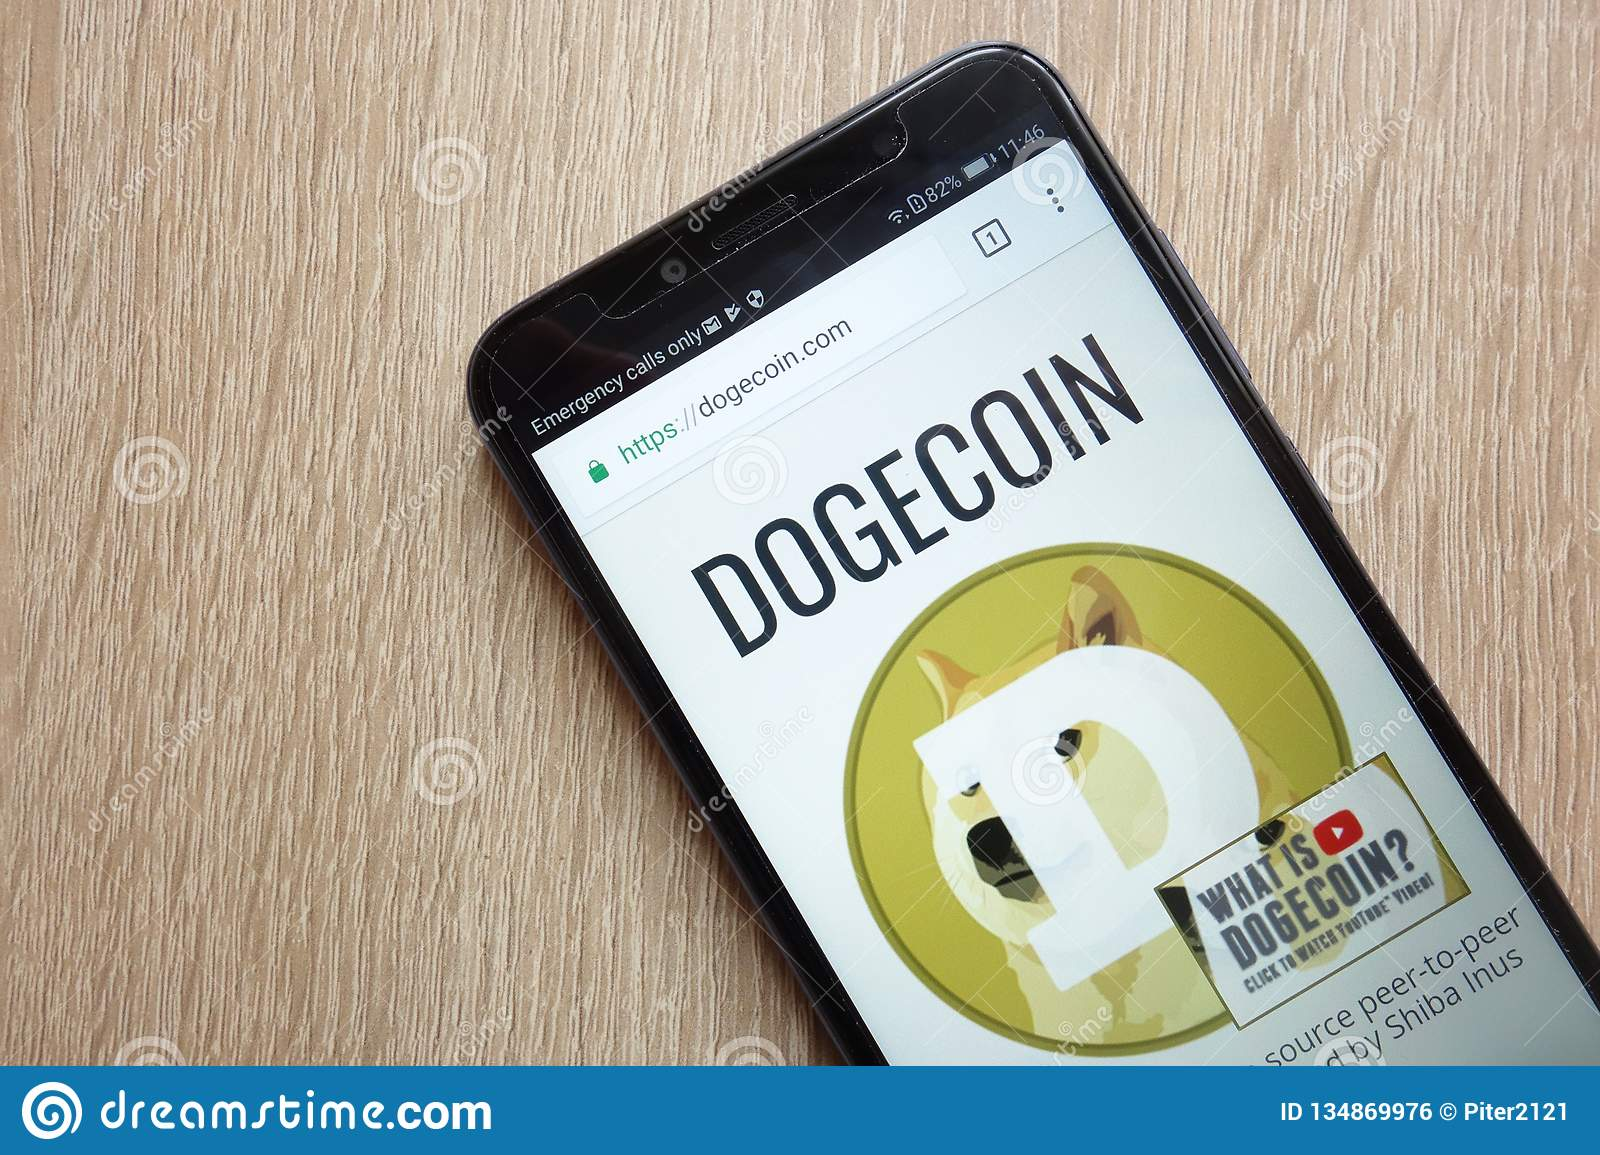 Dogecoin DOGE Cryptocurrency Website Displayed On Huawei Y6 2018